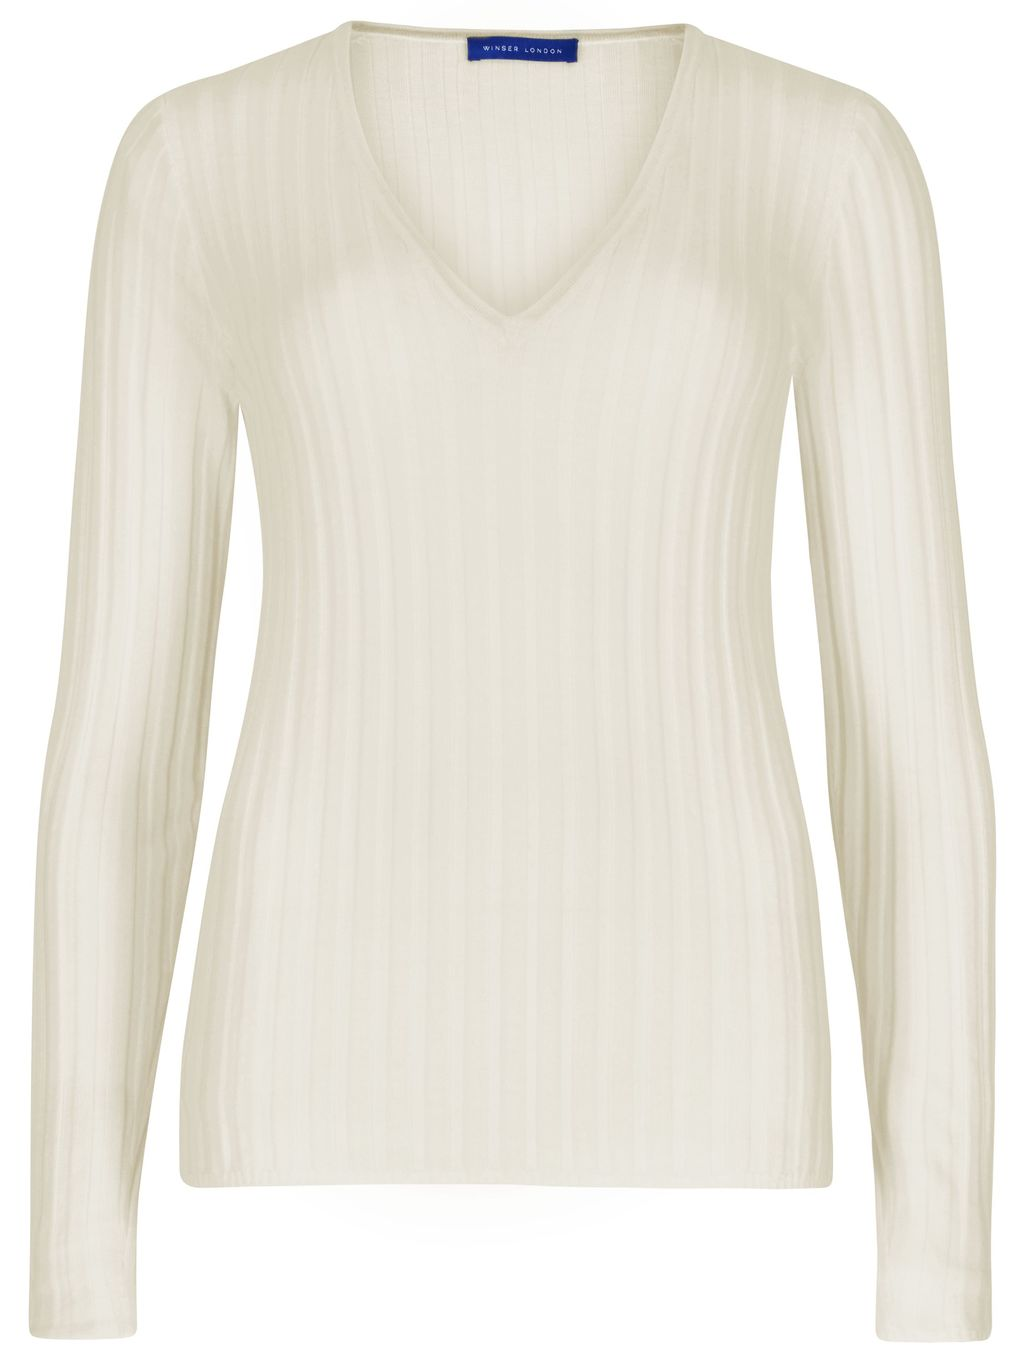 Merino Wool Rib V Neck Jumper, Cream - neckline: v-neck; pattern: plain; style: standard; predominant colour: ivory/cream; occasions: casual; length: standard; fibres: wool - 100%; fit: slim fit; sleeve length: long sleeve; sleeve style: standard; texture group: knits/crochet; pattern type: knitted - fine stitch; season: s/s 2016; wardrobe: basic